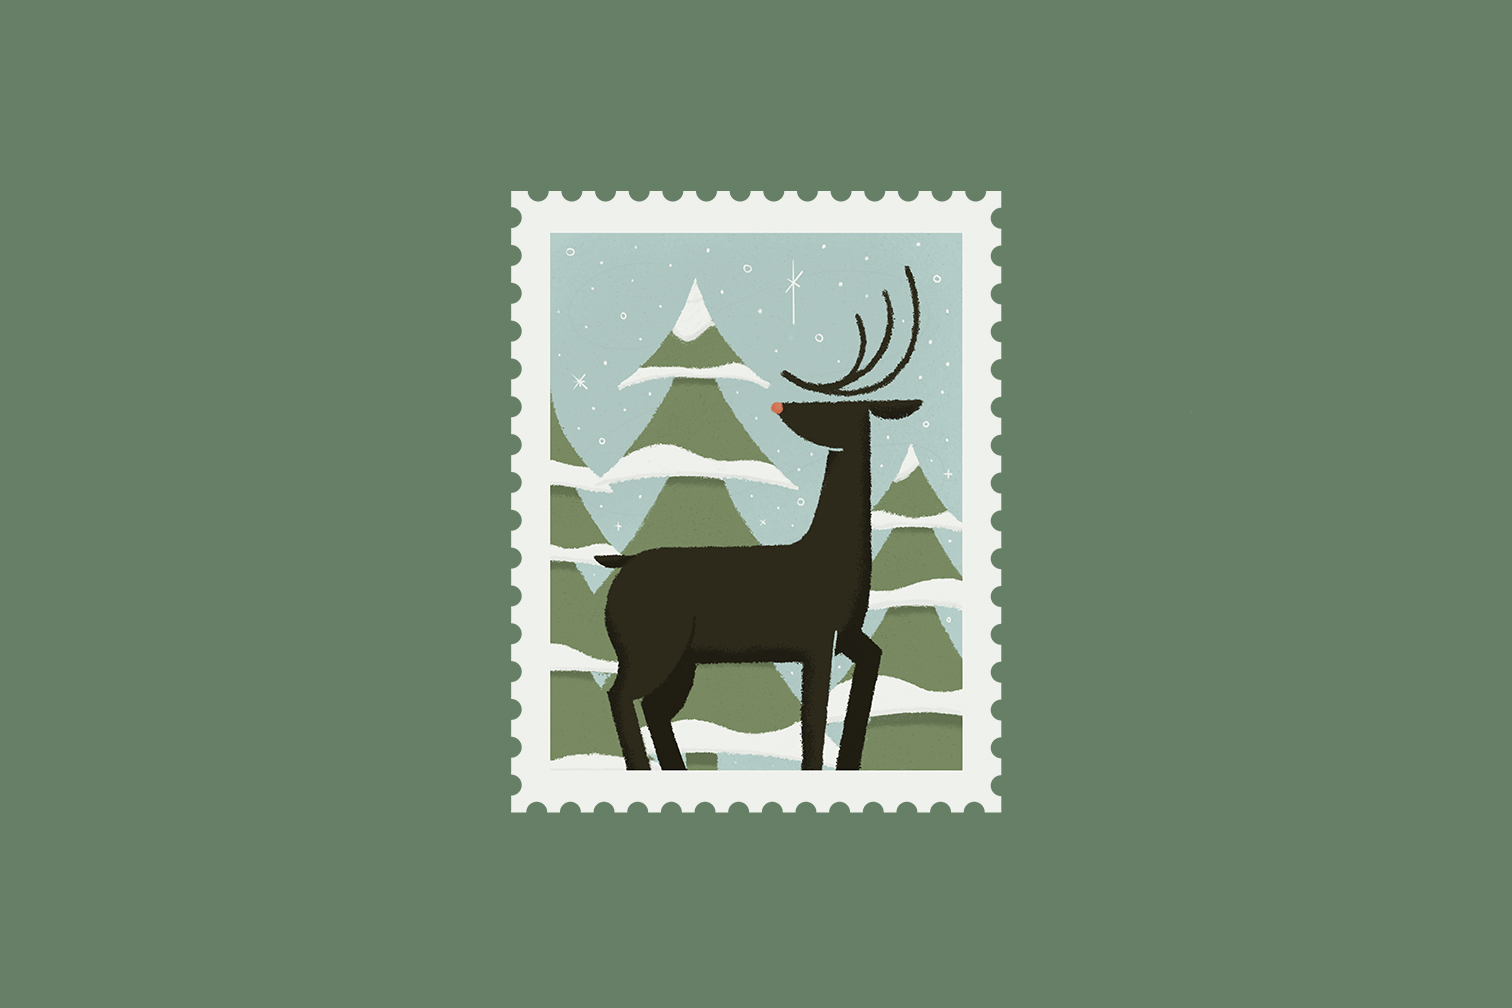 Christmas Stamp - Deer.jpg